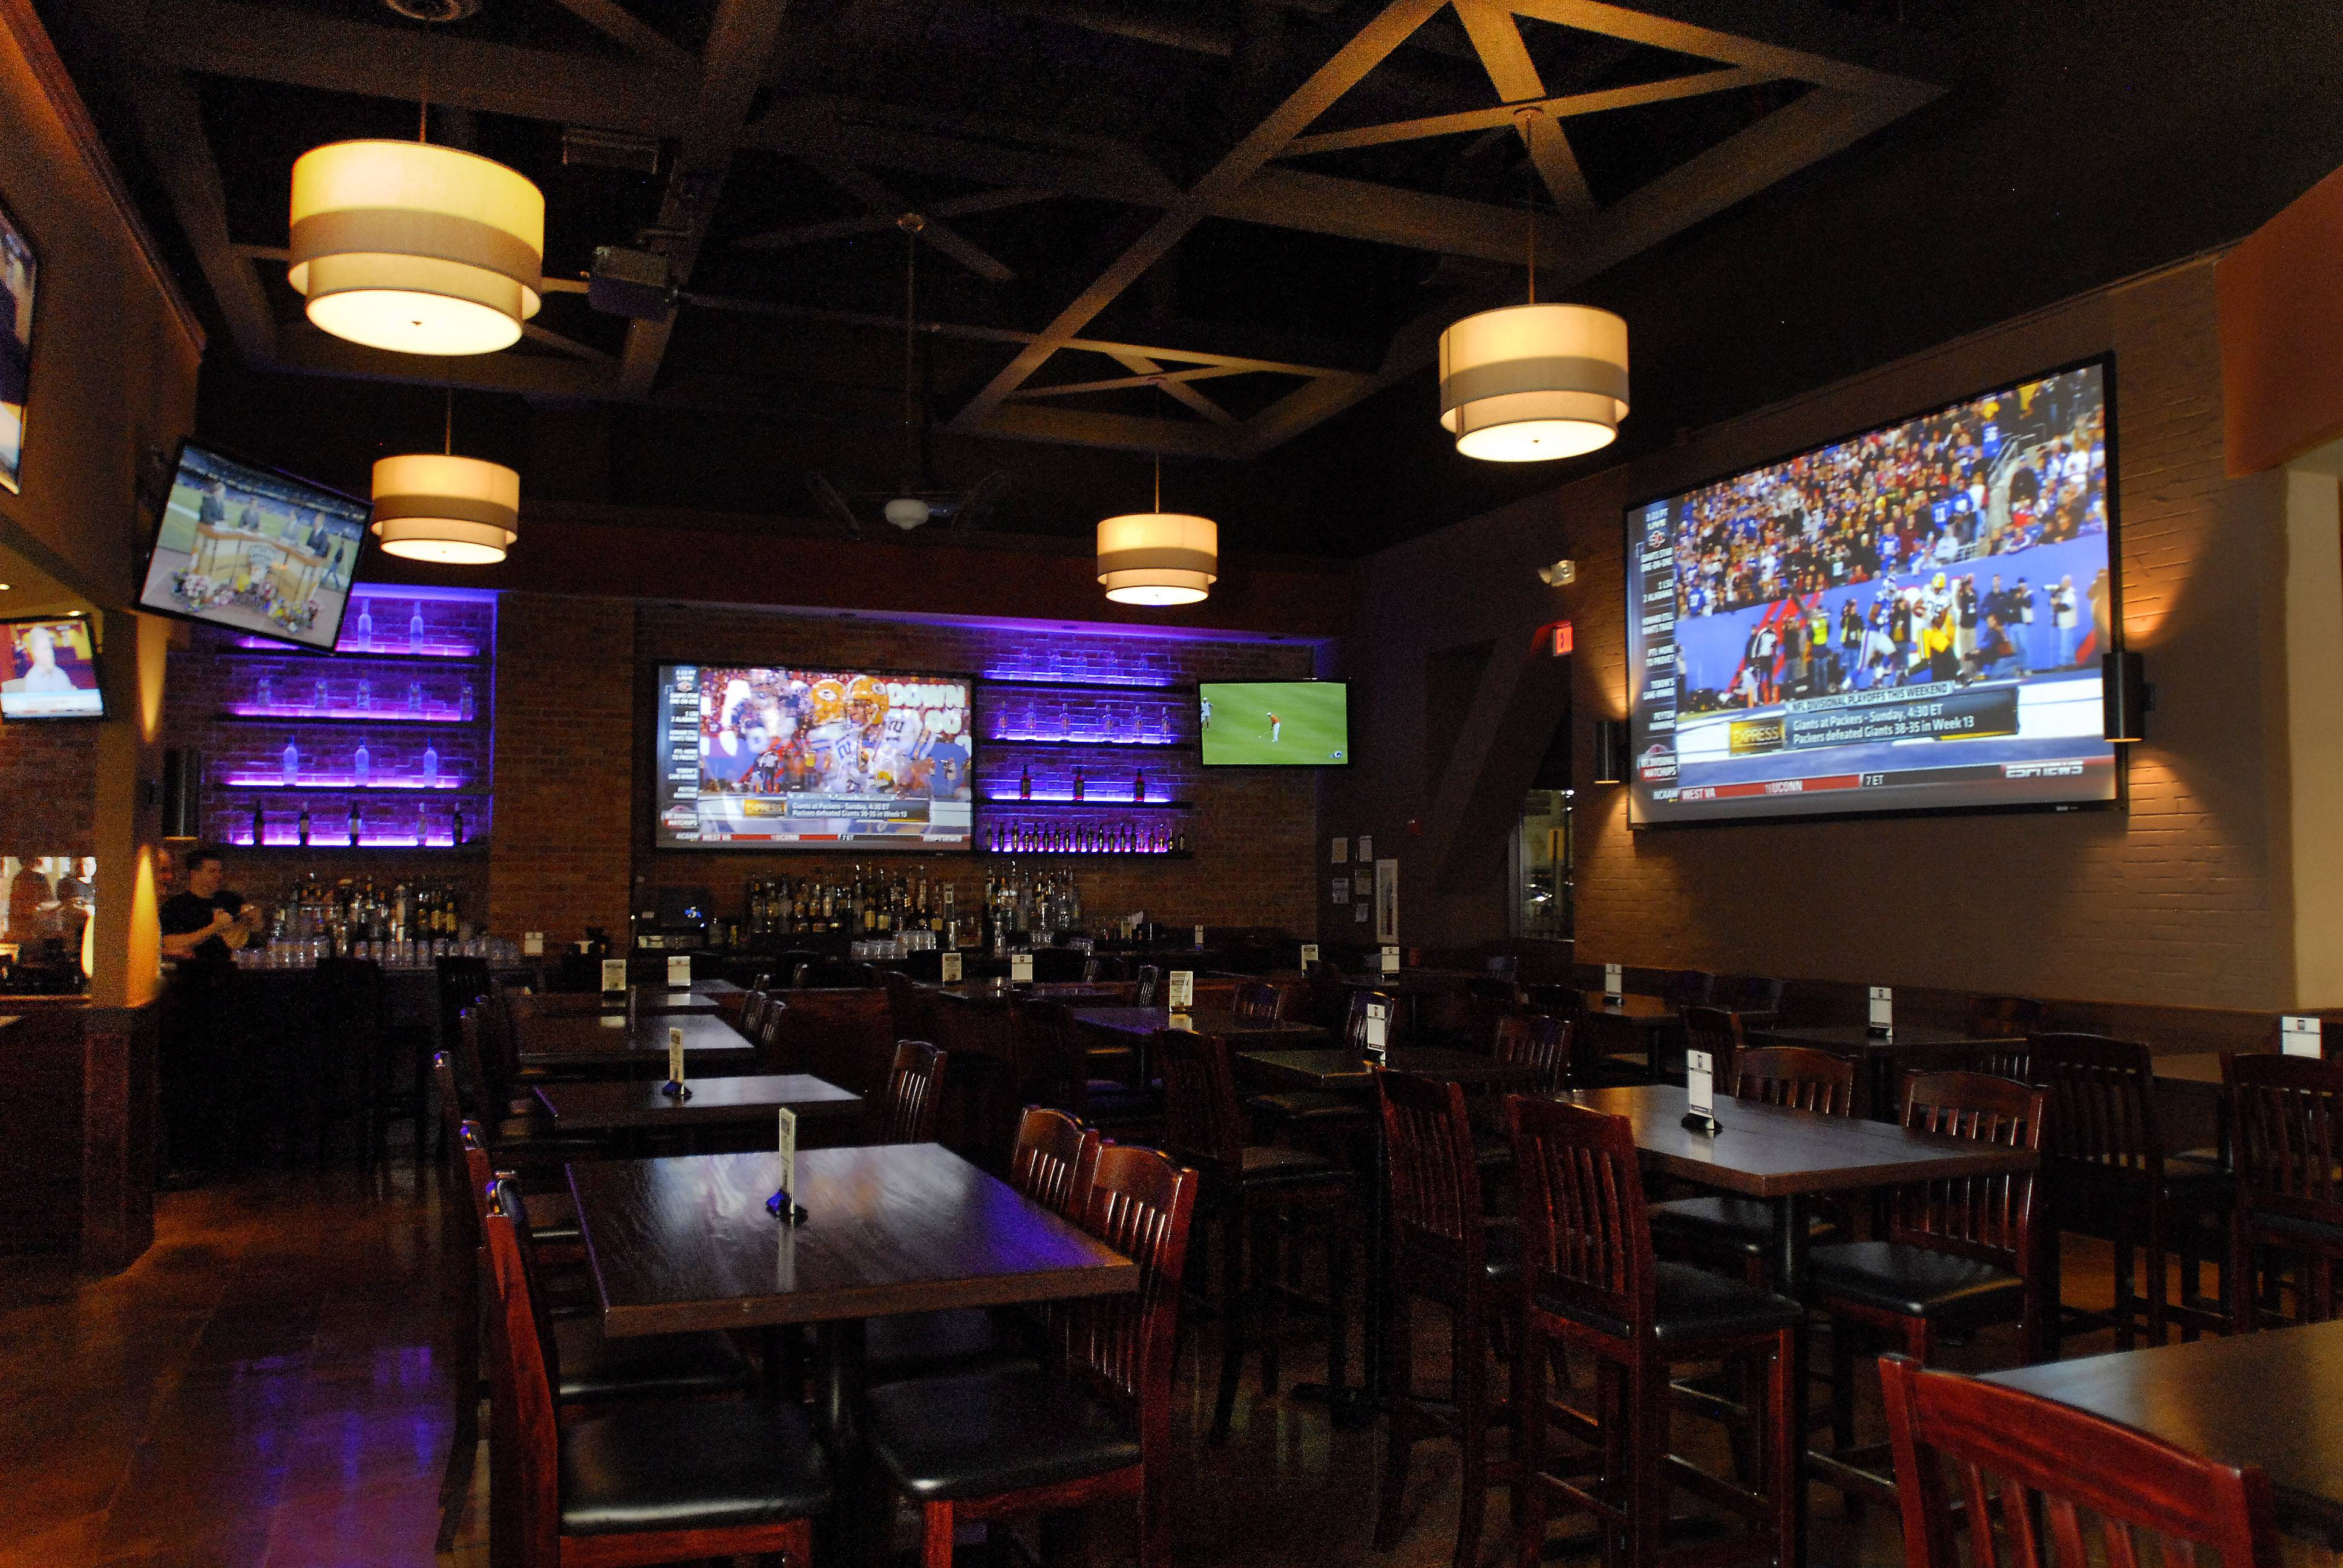 Wickets Bar and Grill in Schaumburg is one of many spots participating in Chicago Northwest Restaurant Week.